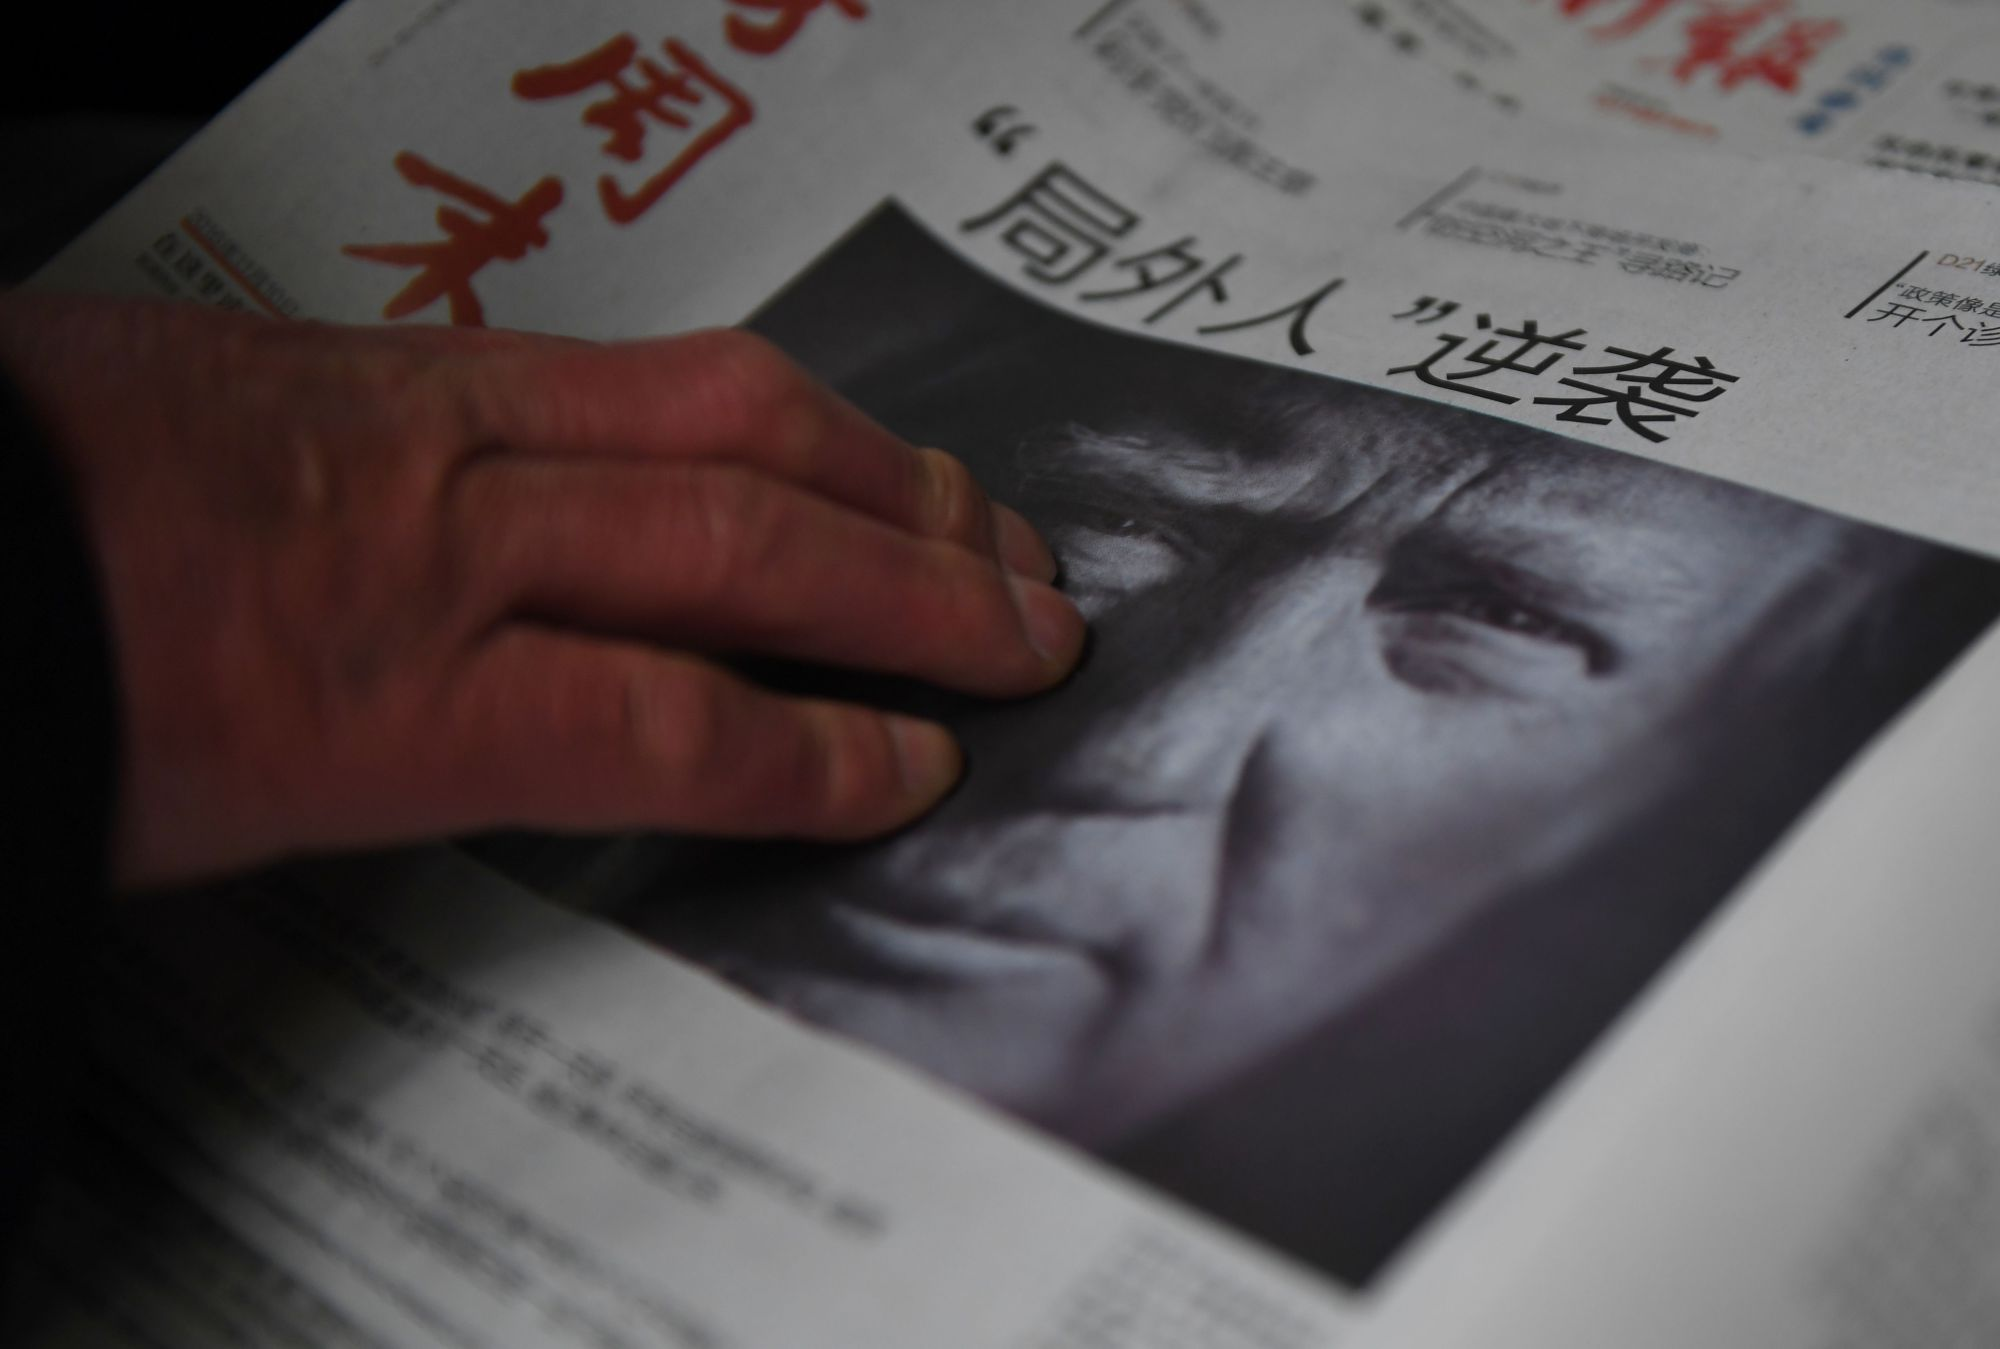 A man buys a newspaper featuring U.S. President-elect Donald Trump at a newsstand in Beijing on Nov. 10. | AFP-JIJI